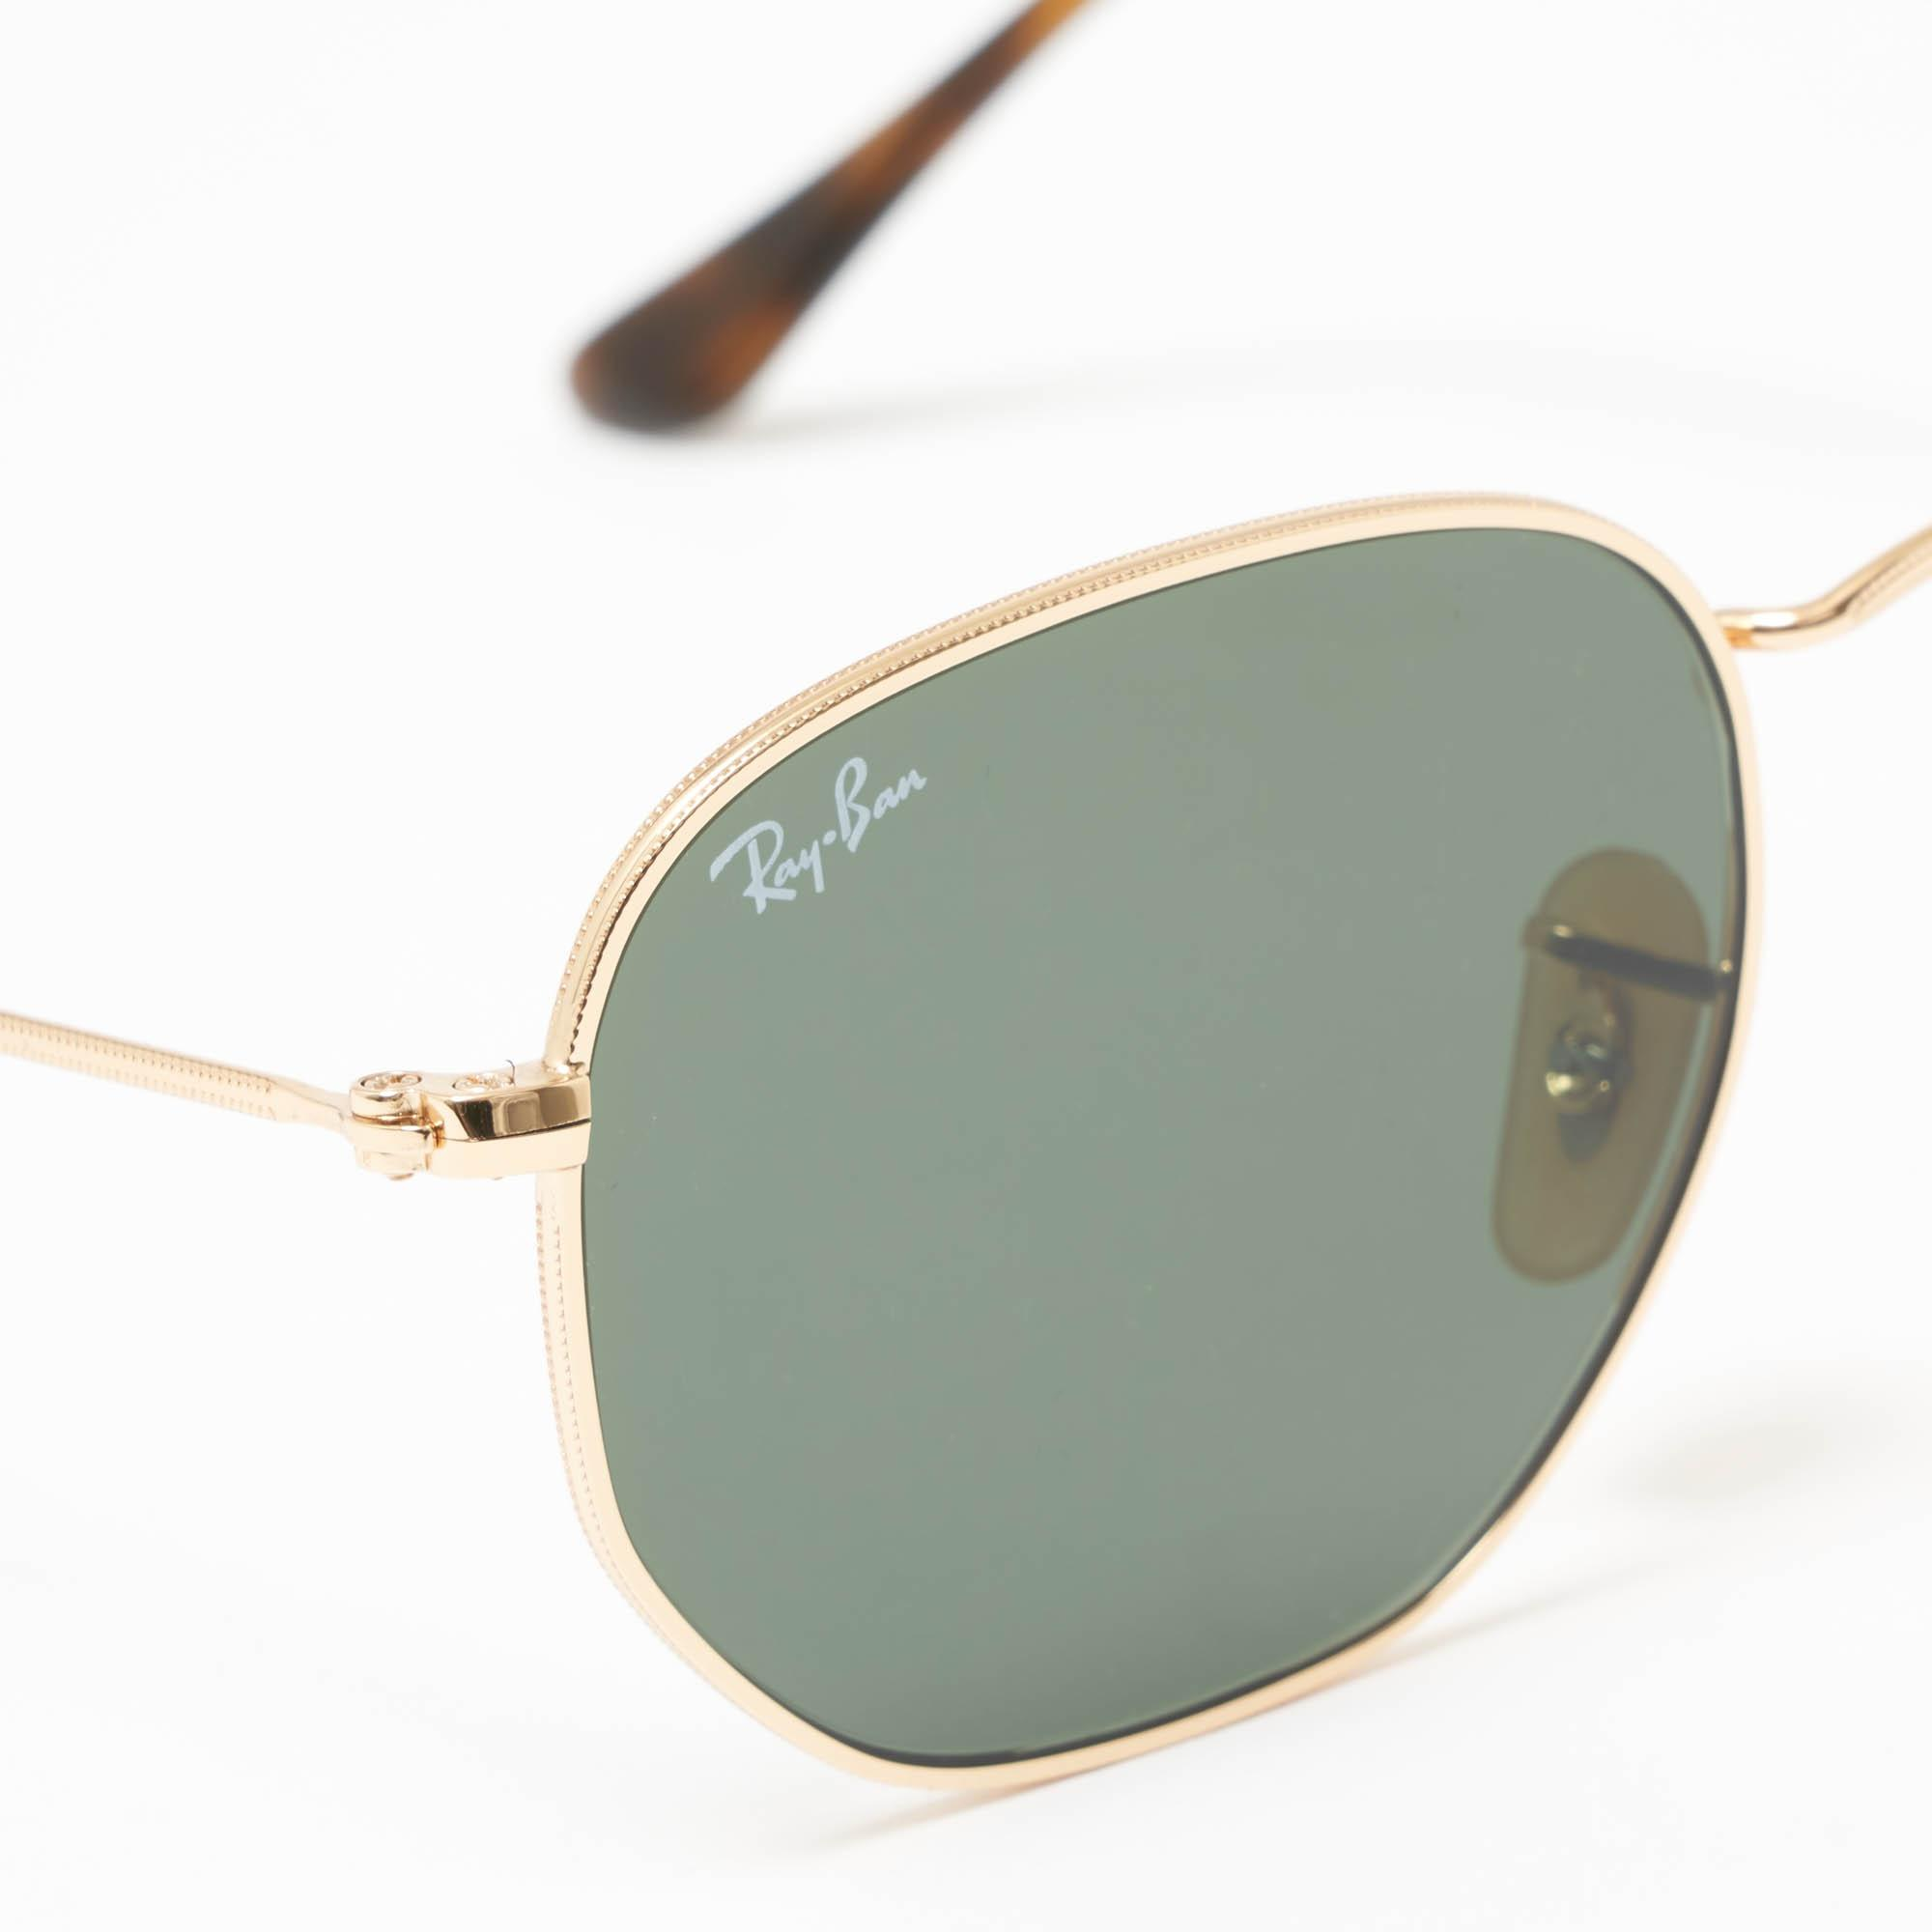 9b7b6740984 Ray-Ban - Metallic Gold Hexagonal Flat Lens Sunglasses - Green Classic  G-15. View fullscreen